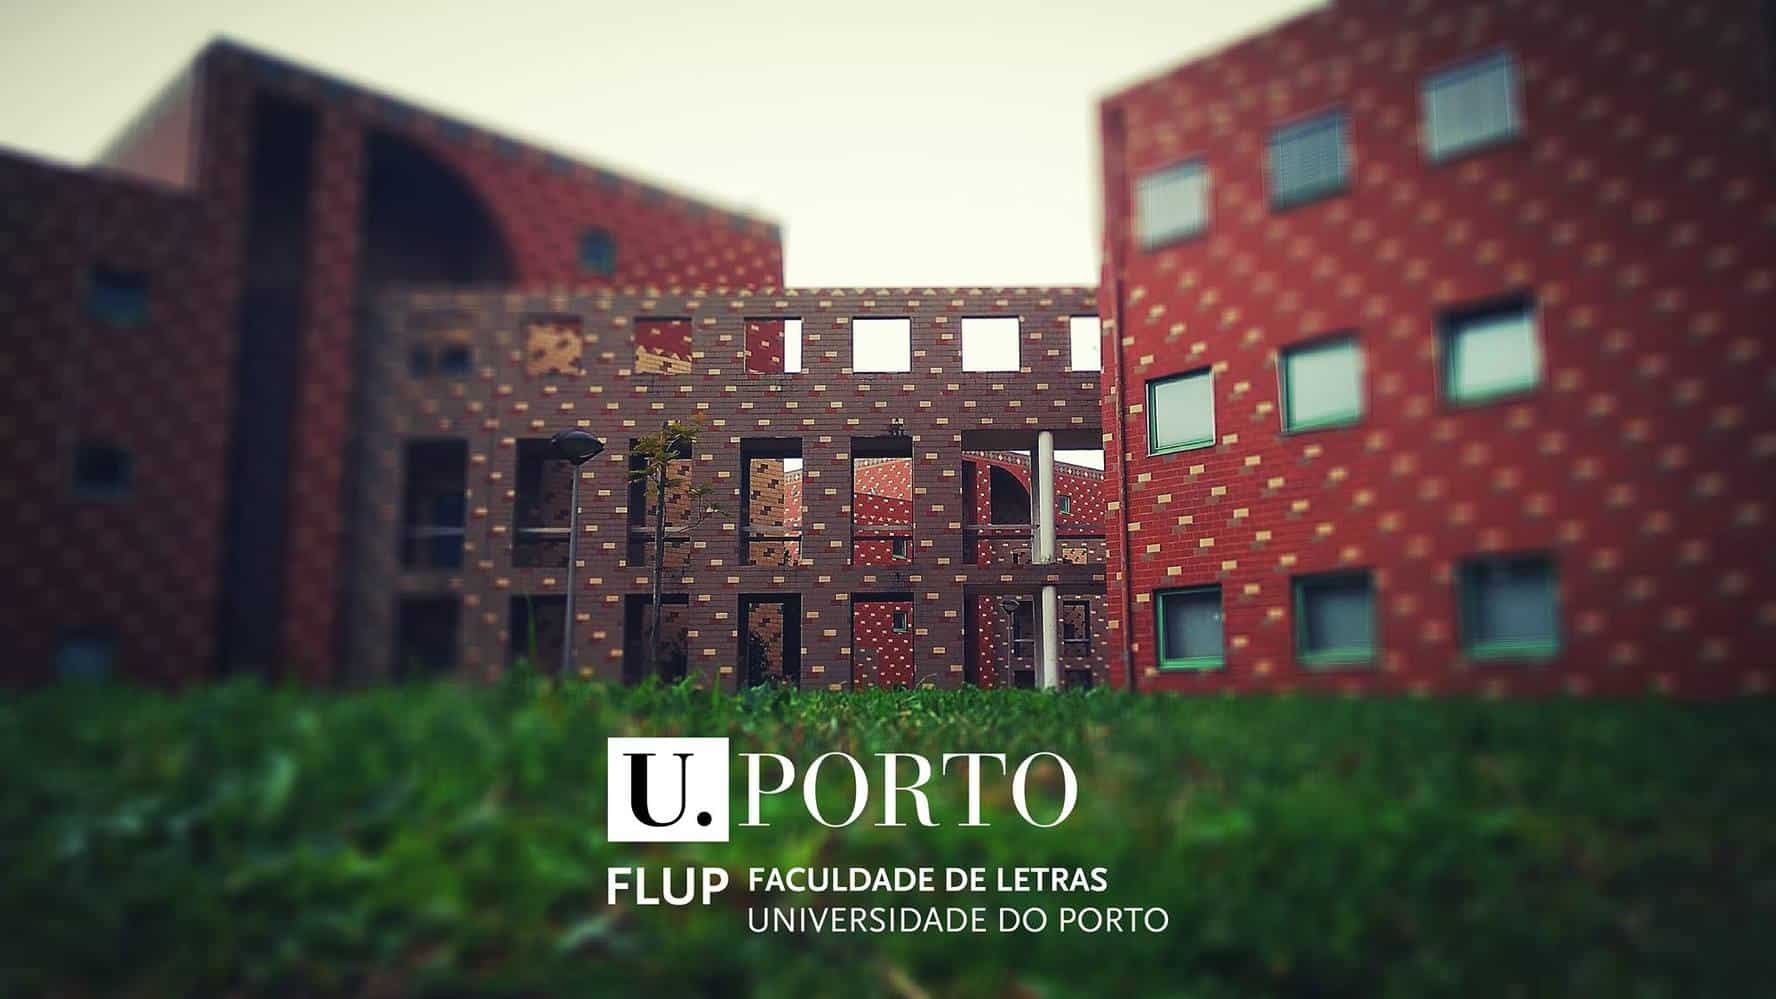 Faculty of Arts and Humanities of University of Porto Campus